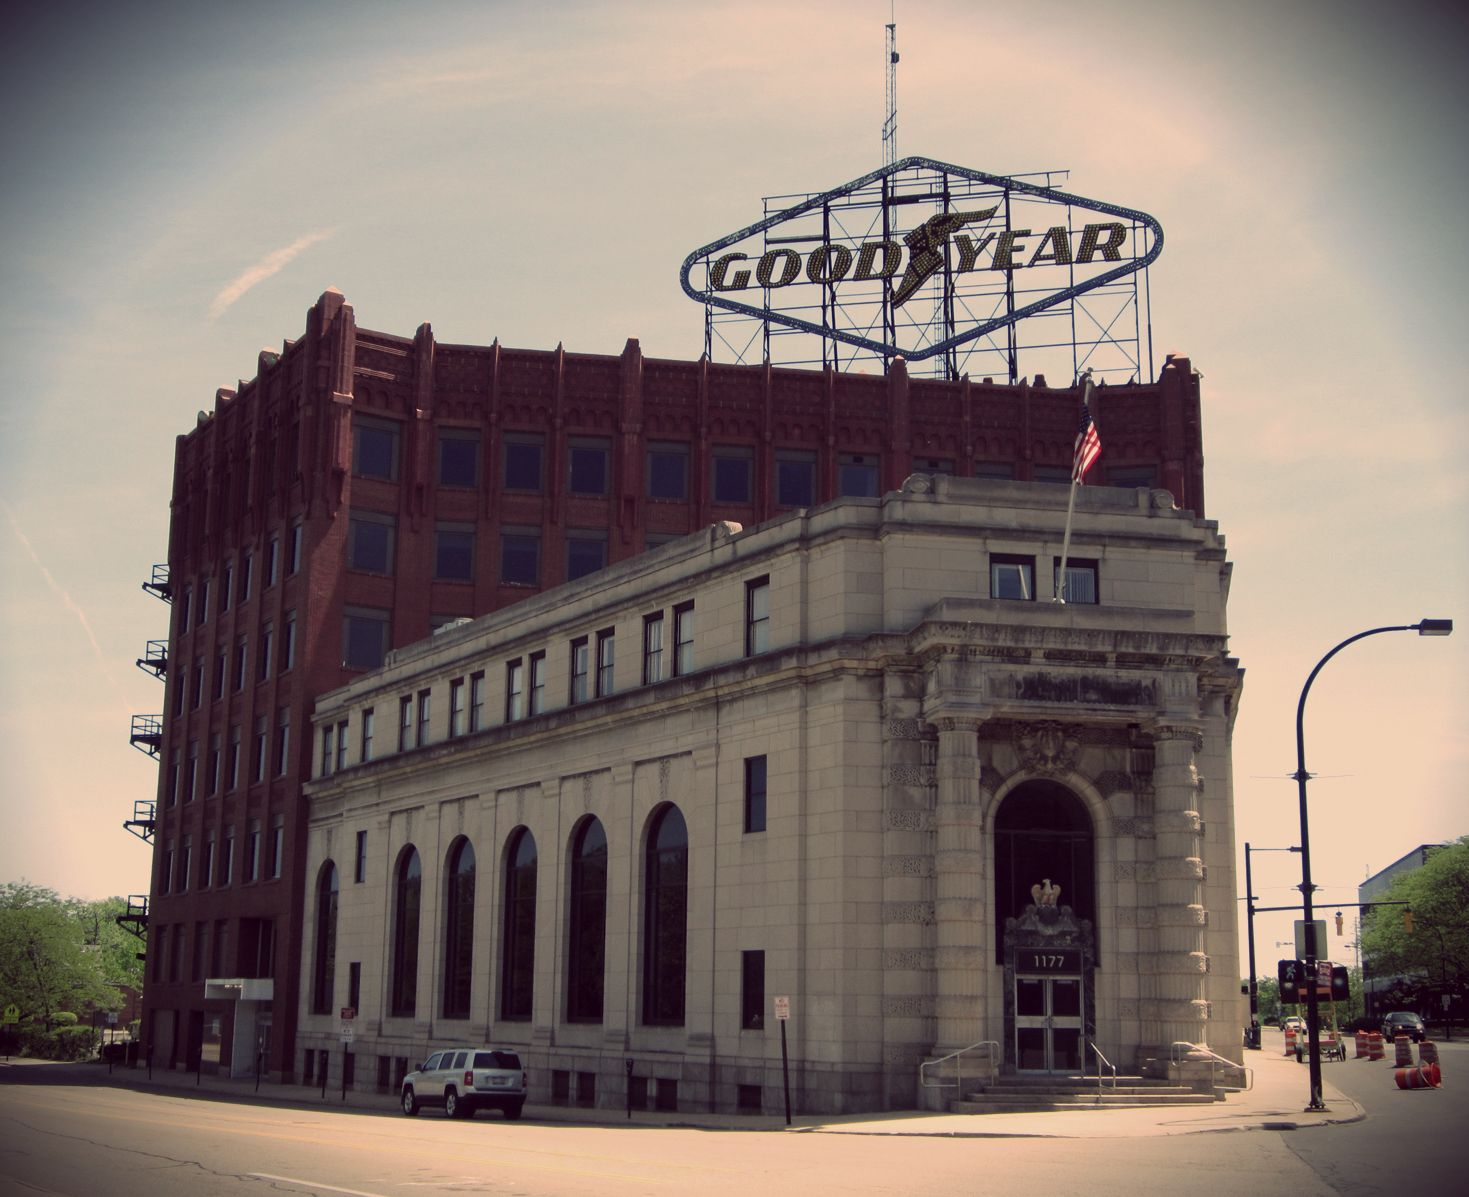 Former Goodyear Tire And Rubber Company Headquarters